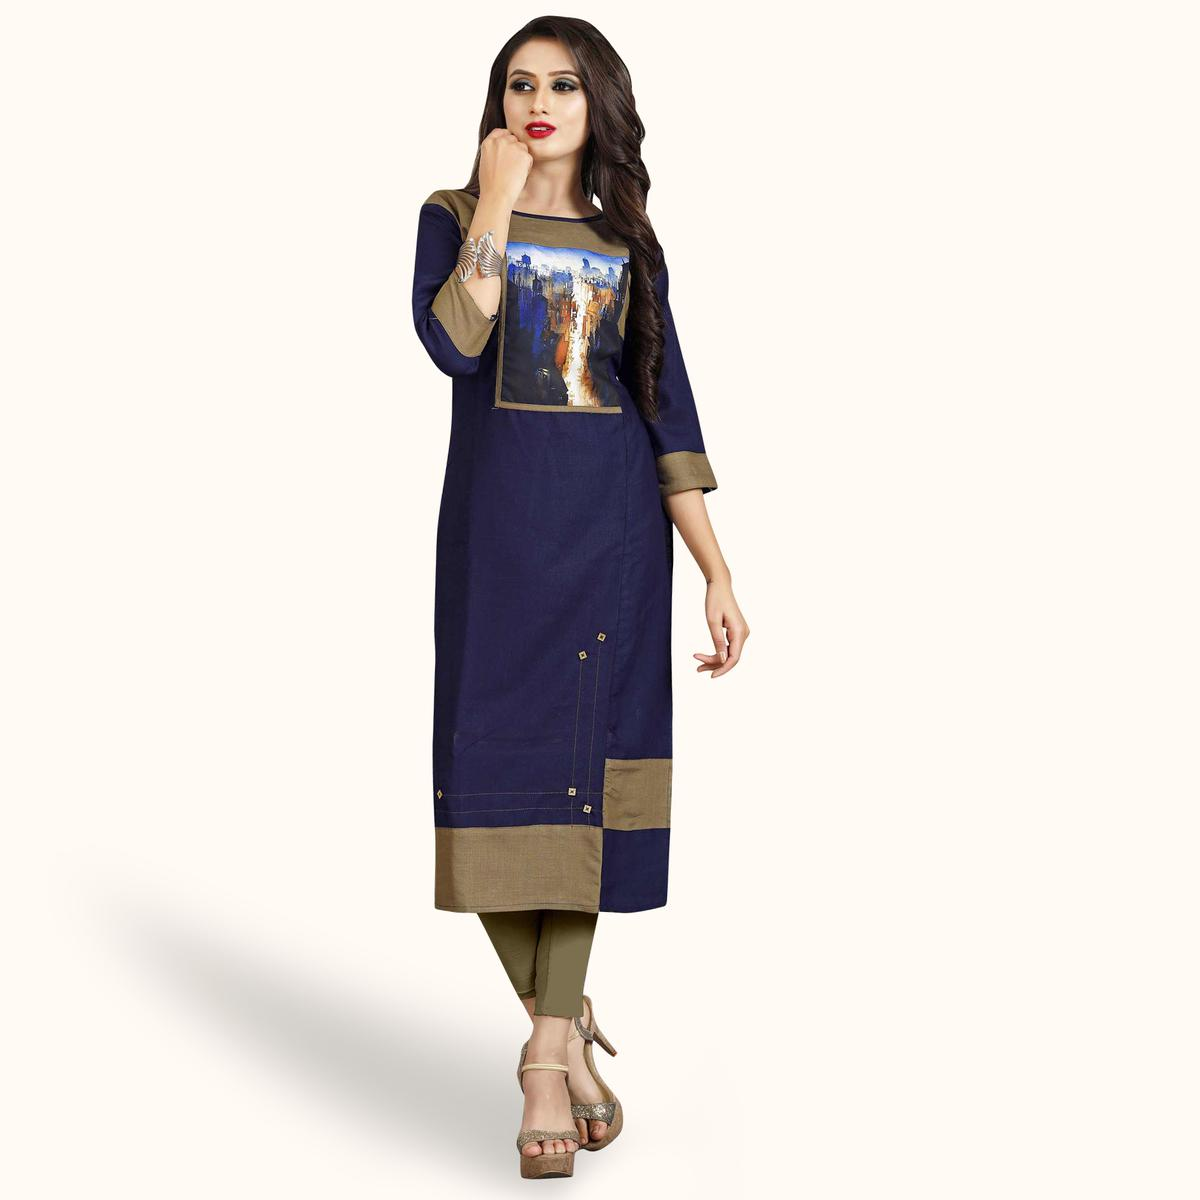 Marvellous Navy Blue Colored Casual Printed Rayon Kurti